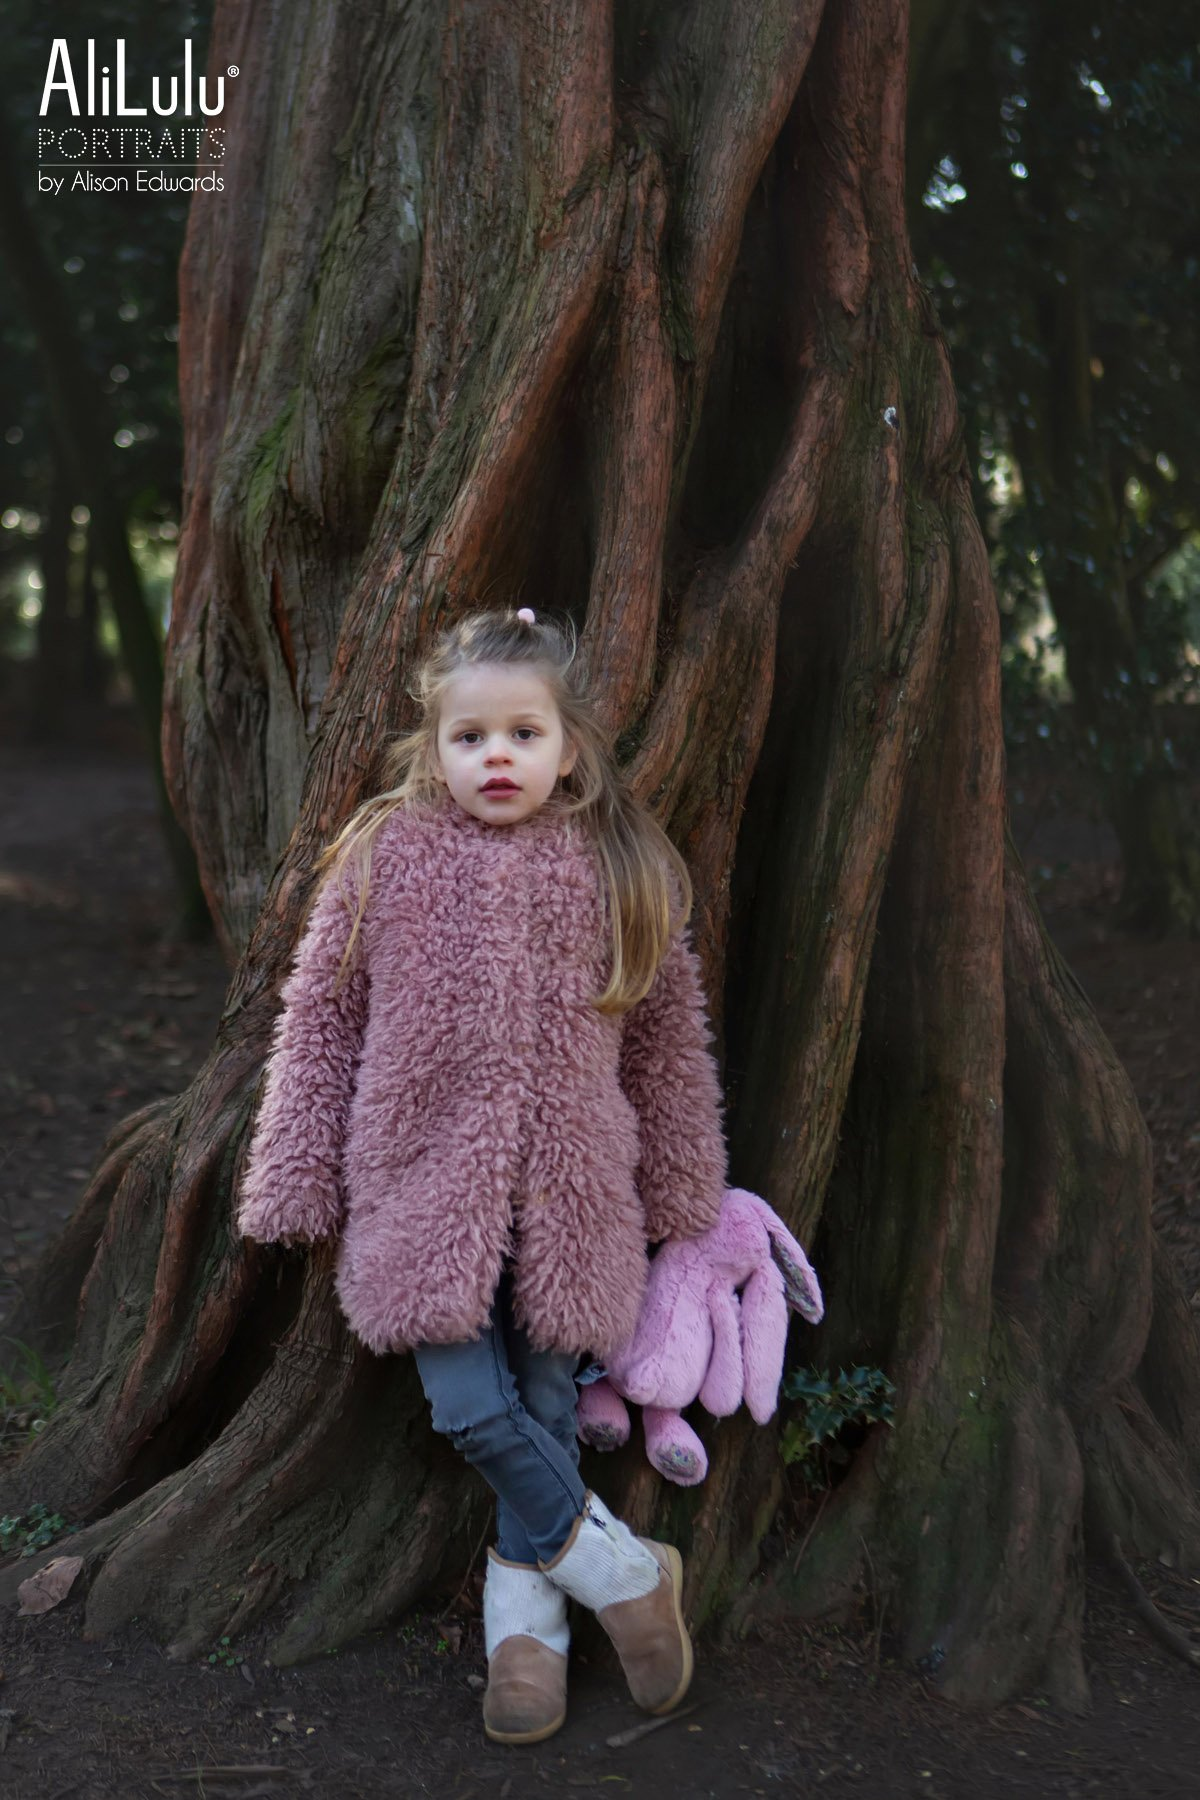 young girl leaning against tree holding bunny teddy